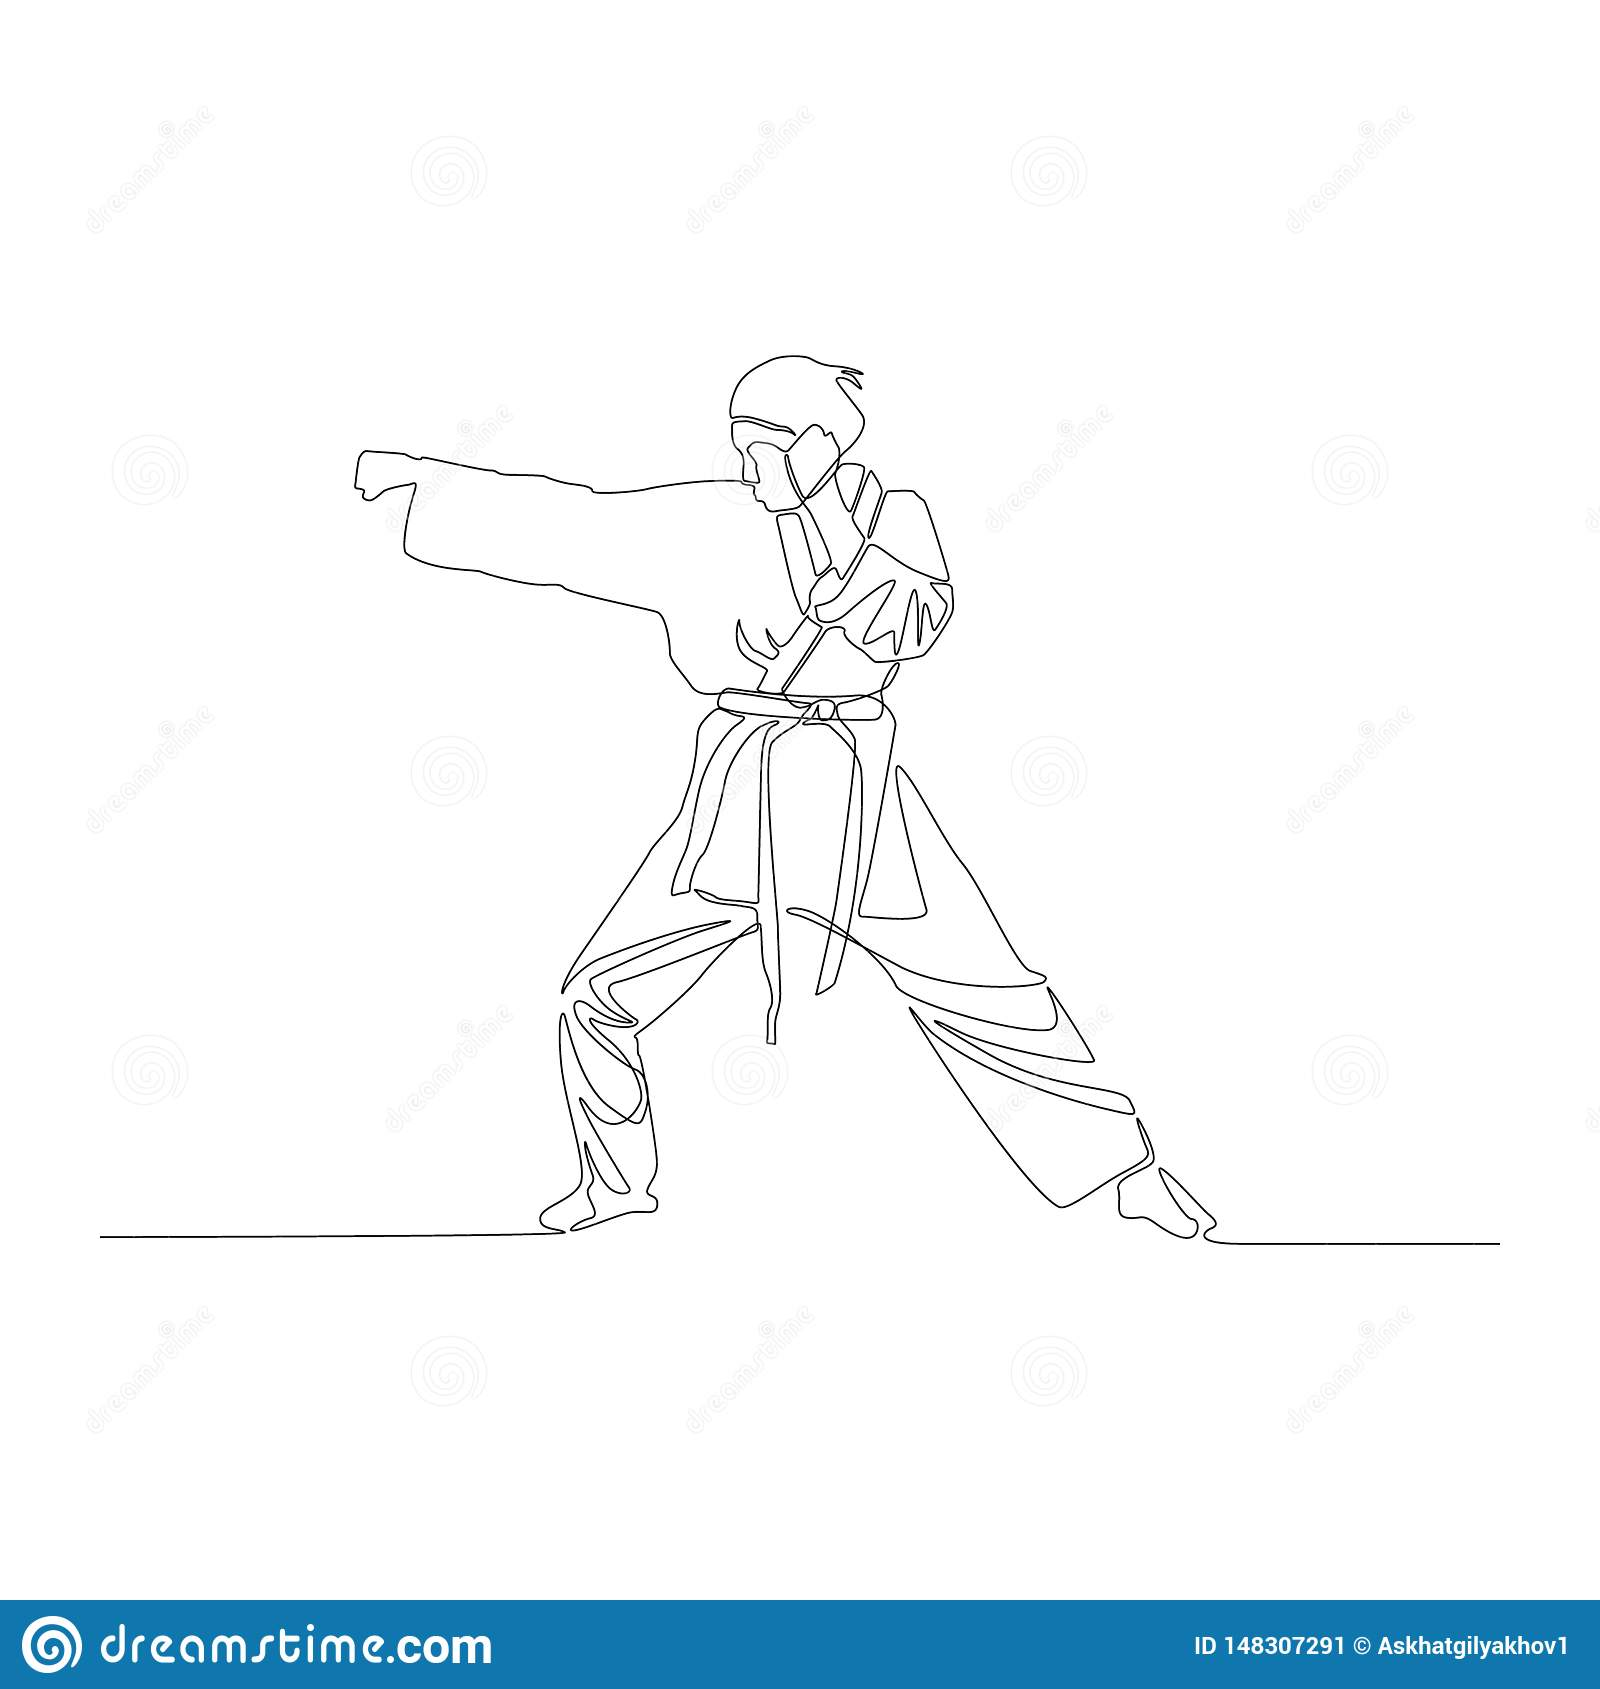 Continuous Line Drawing Karate Girl Makes A Punch Vector Illustration Stock Vector Illustration Of Fitness Illustration 148307291